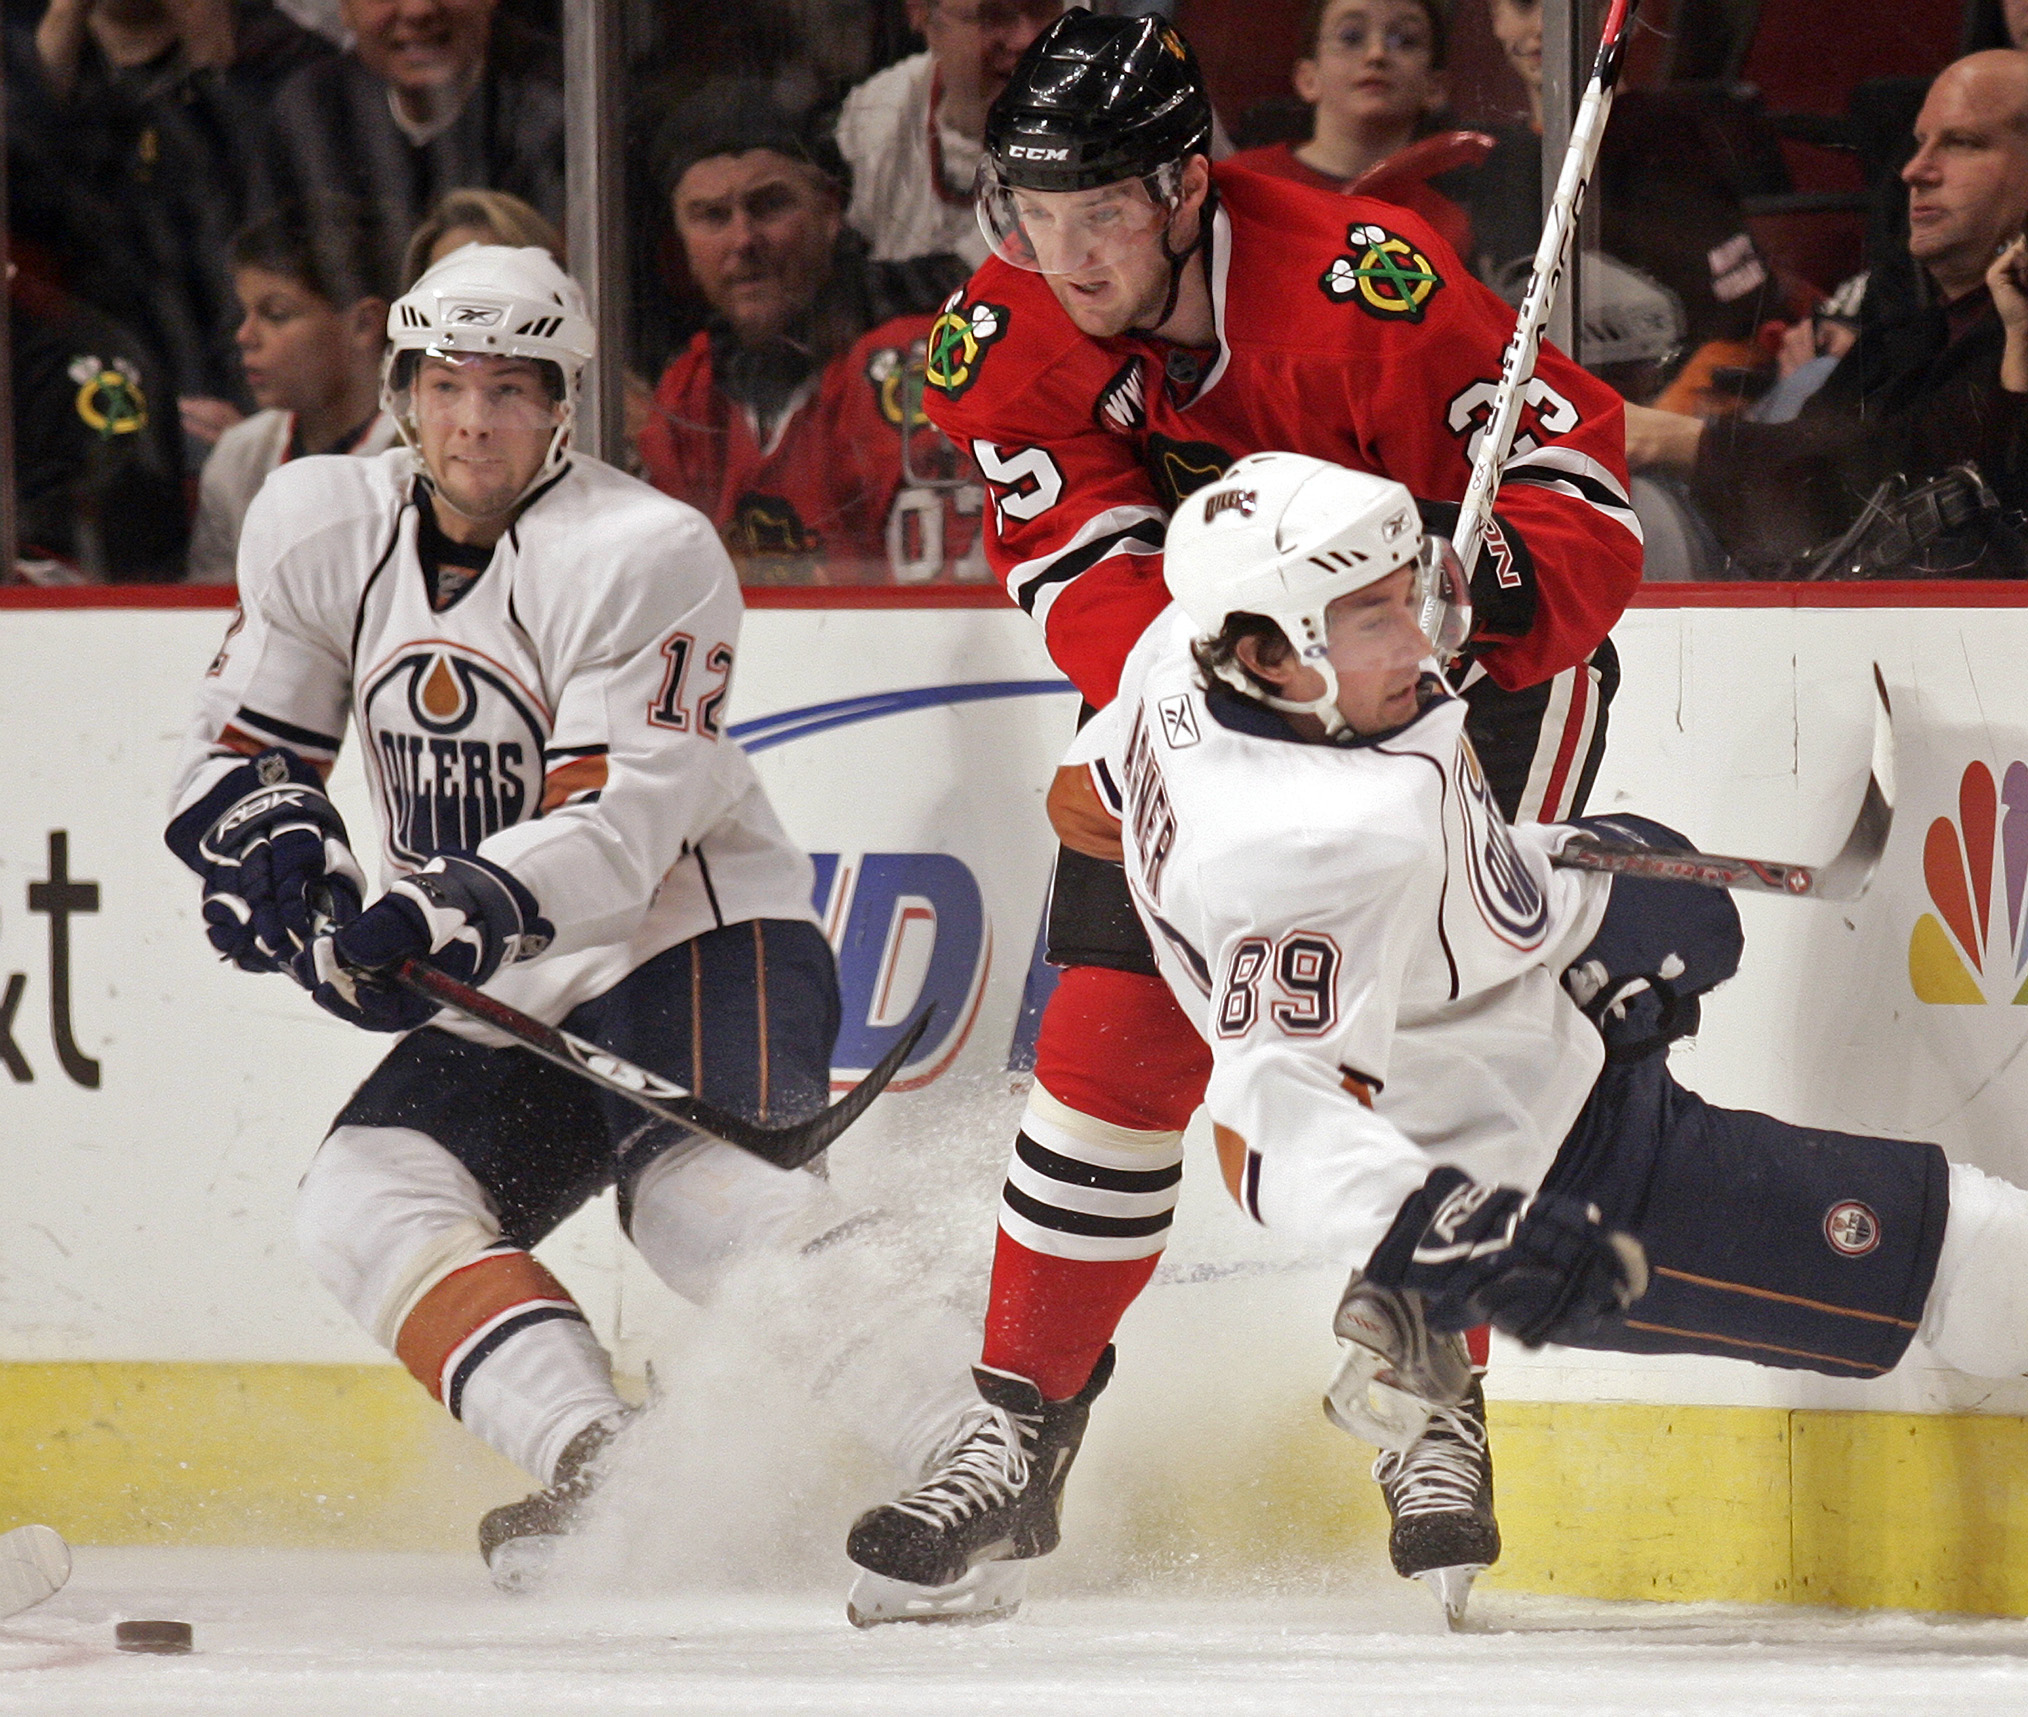 Edmonton Oilers' Robert Nilsson (12) looks to pass the puck as teammate Sam Gagner (89) gets knocked down by Chicago Blackhawks' Cam Barker during the...